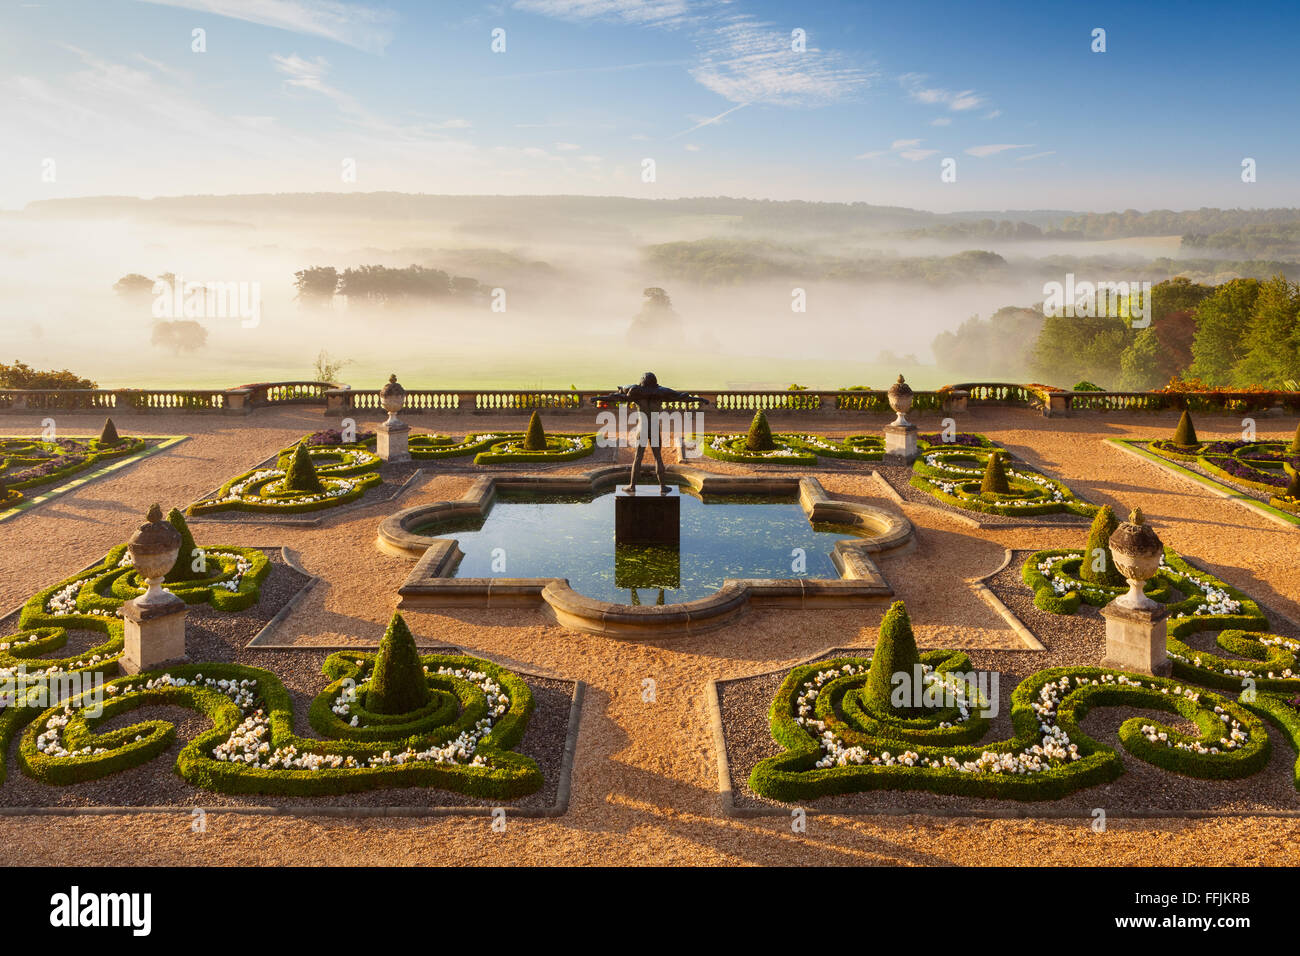 The Terrace Garden at Harewood House in West Yorkshire, UK. One of the ten Treasure Houses of England. - Stock Image